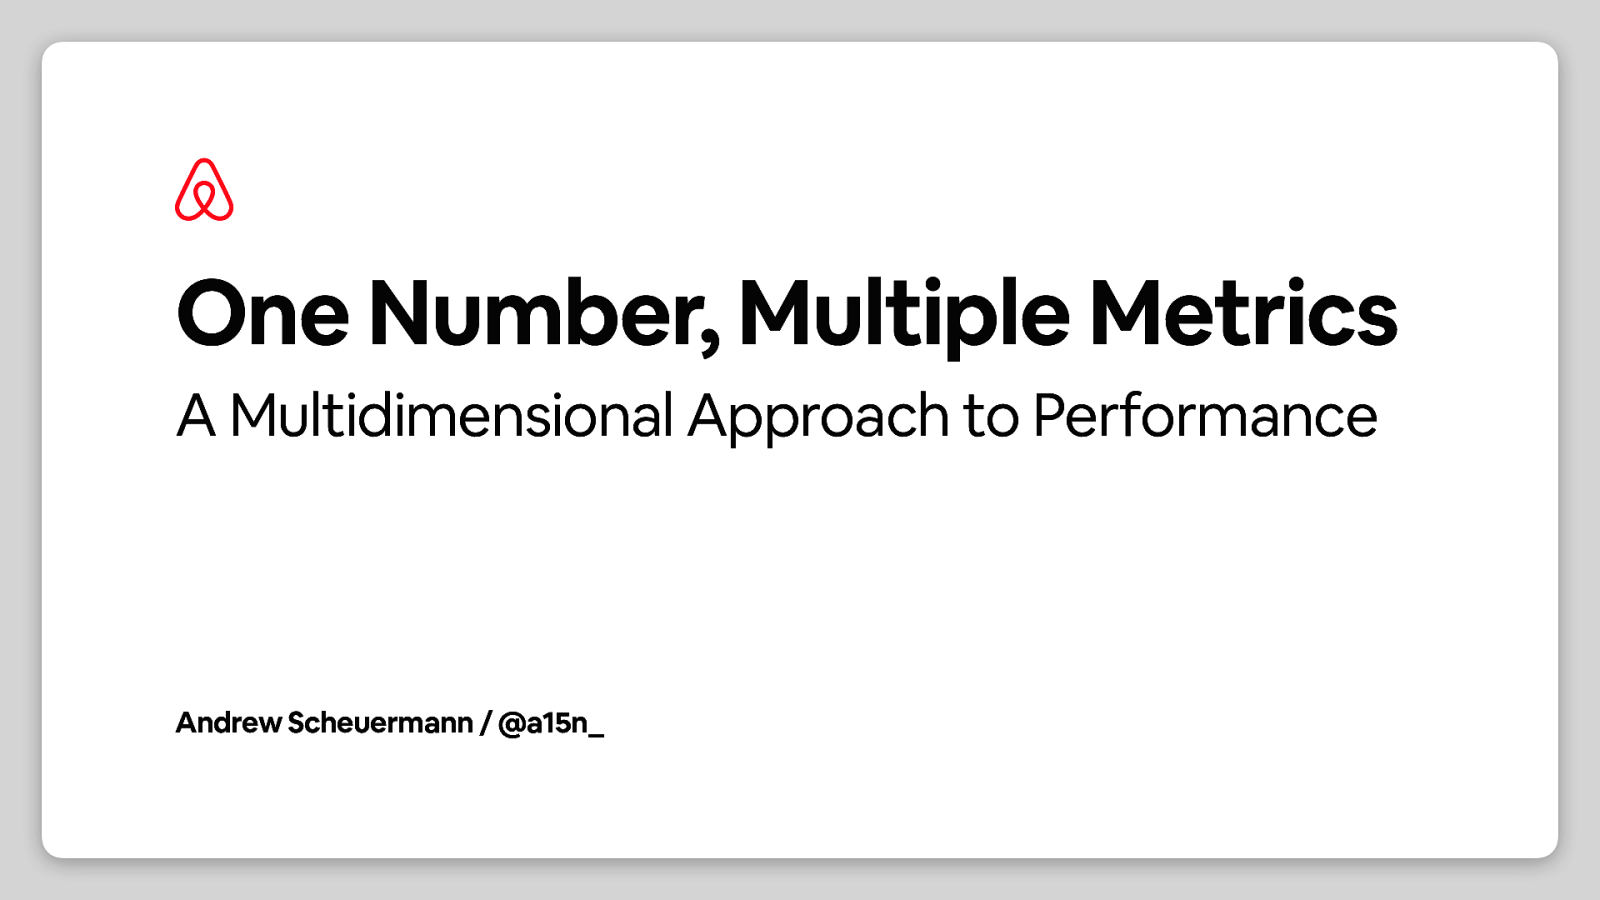 One Number, Multiple Metrics